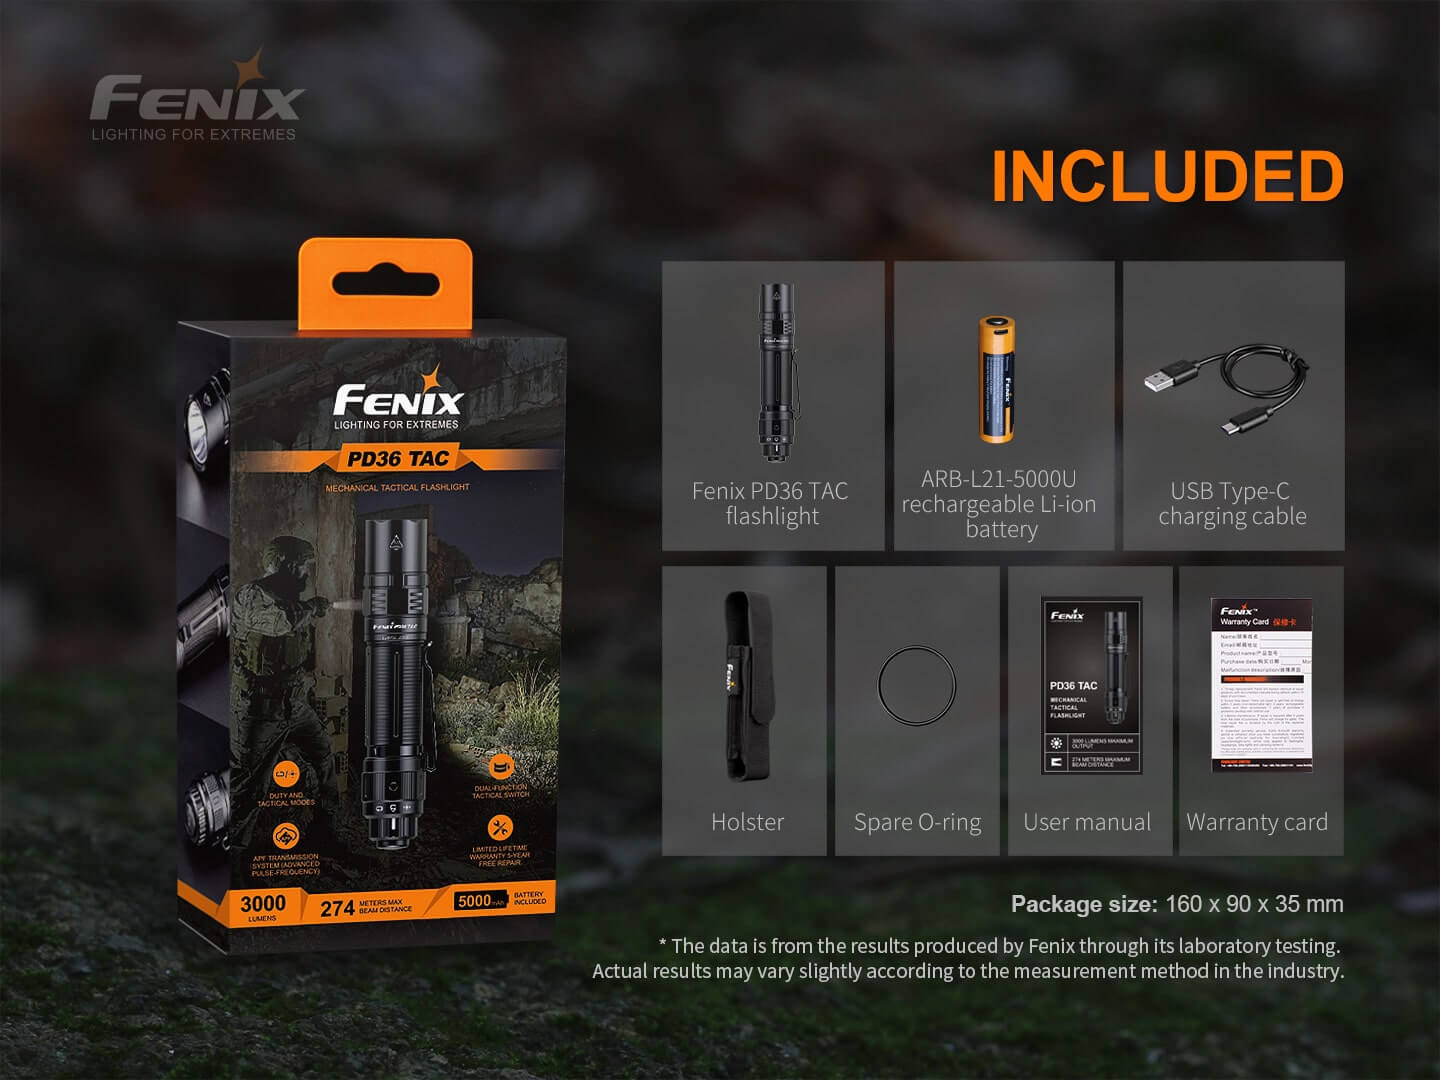 Fenix PD36 TAC LED Torch in India, 3000 Lumens Tactical Duty Flashlight, Tough Outdoor Work Light, Powerful Torch